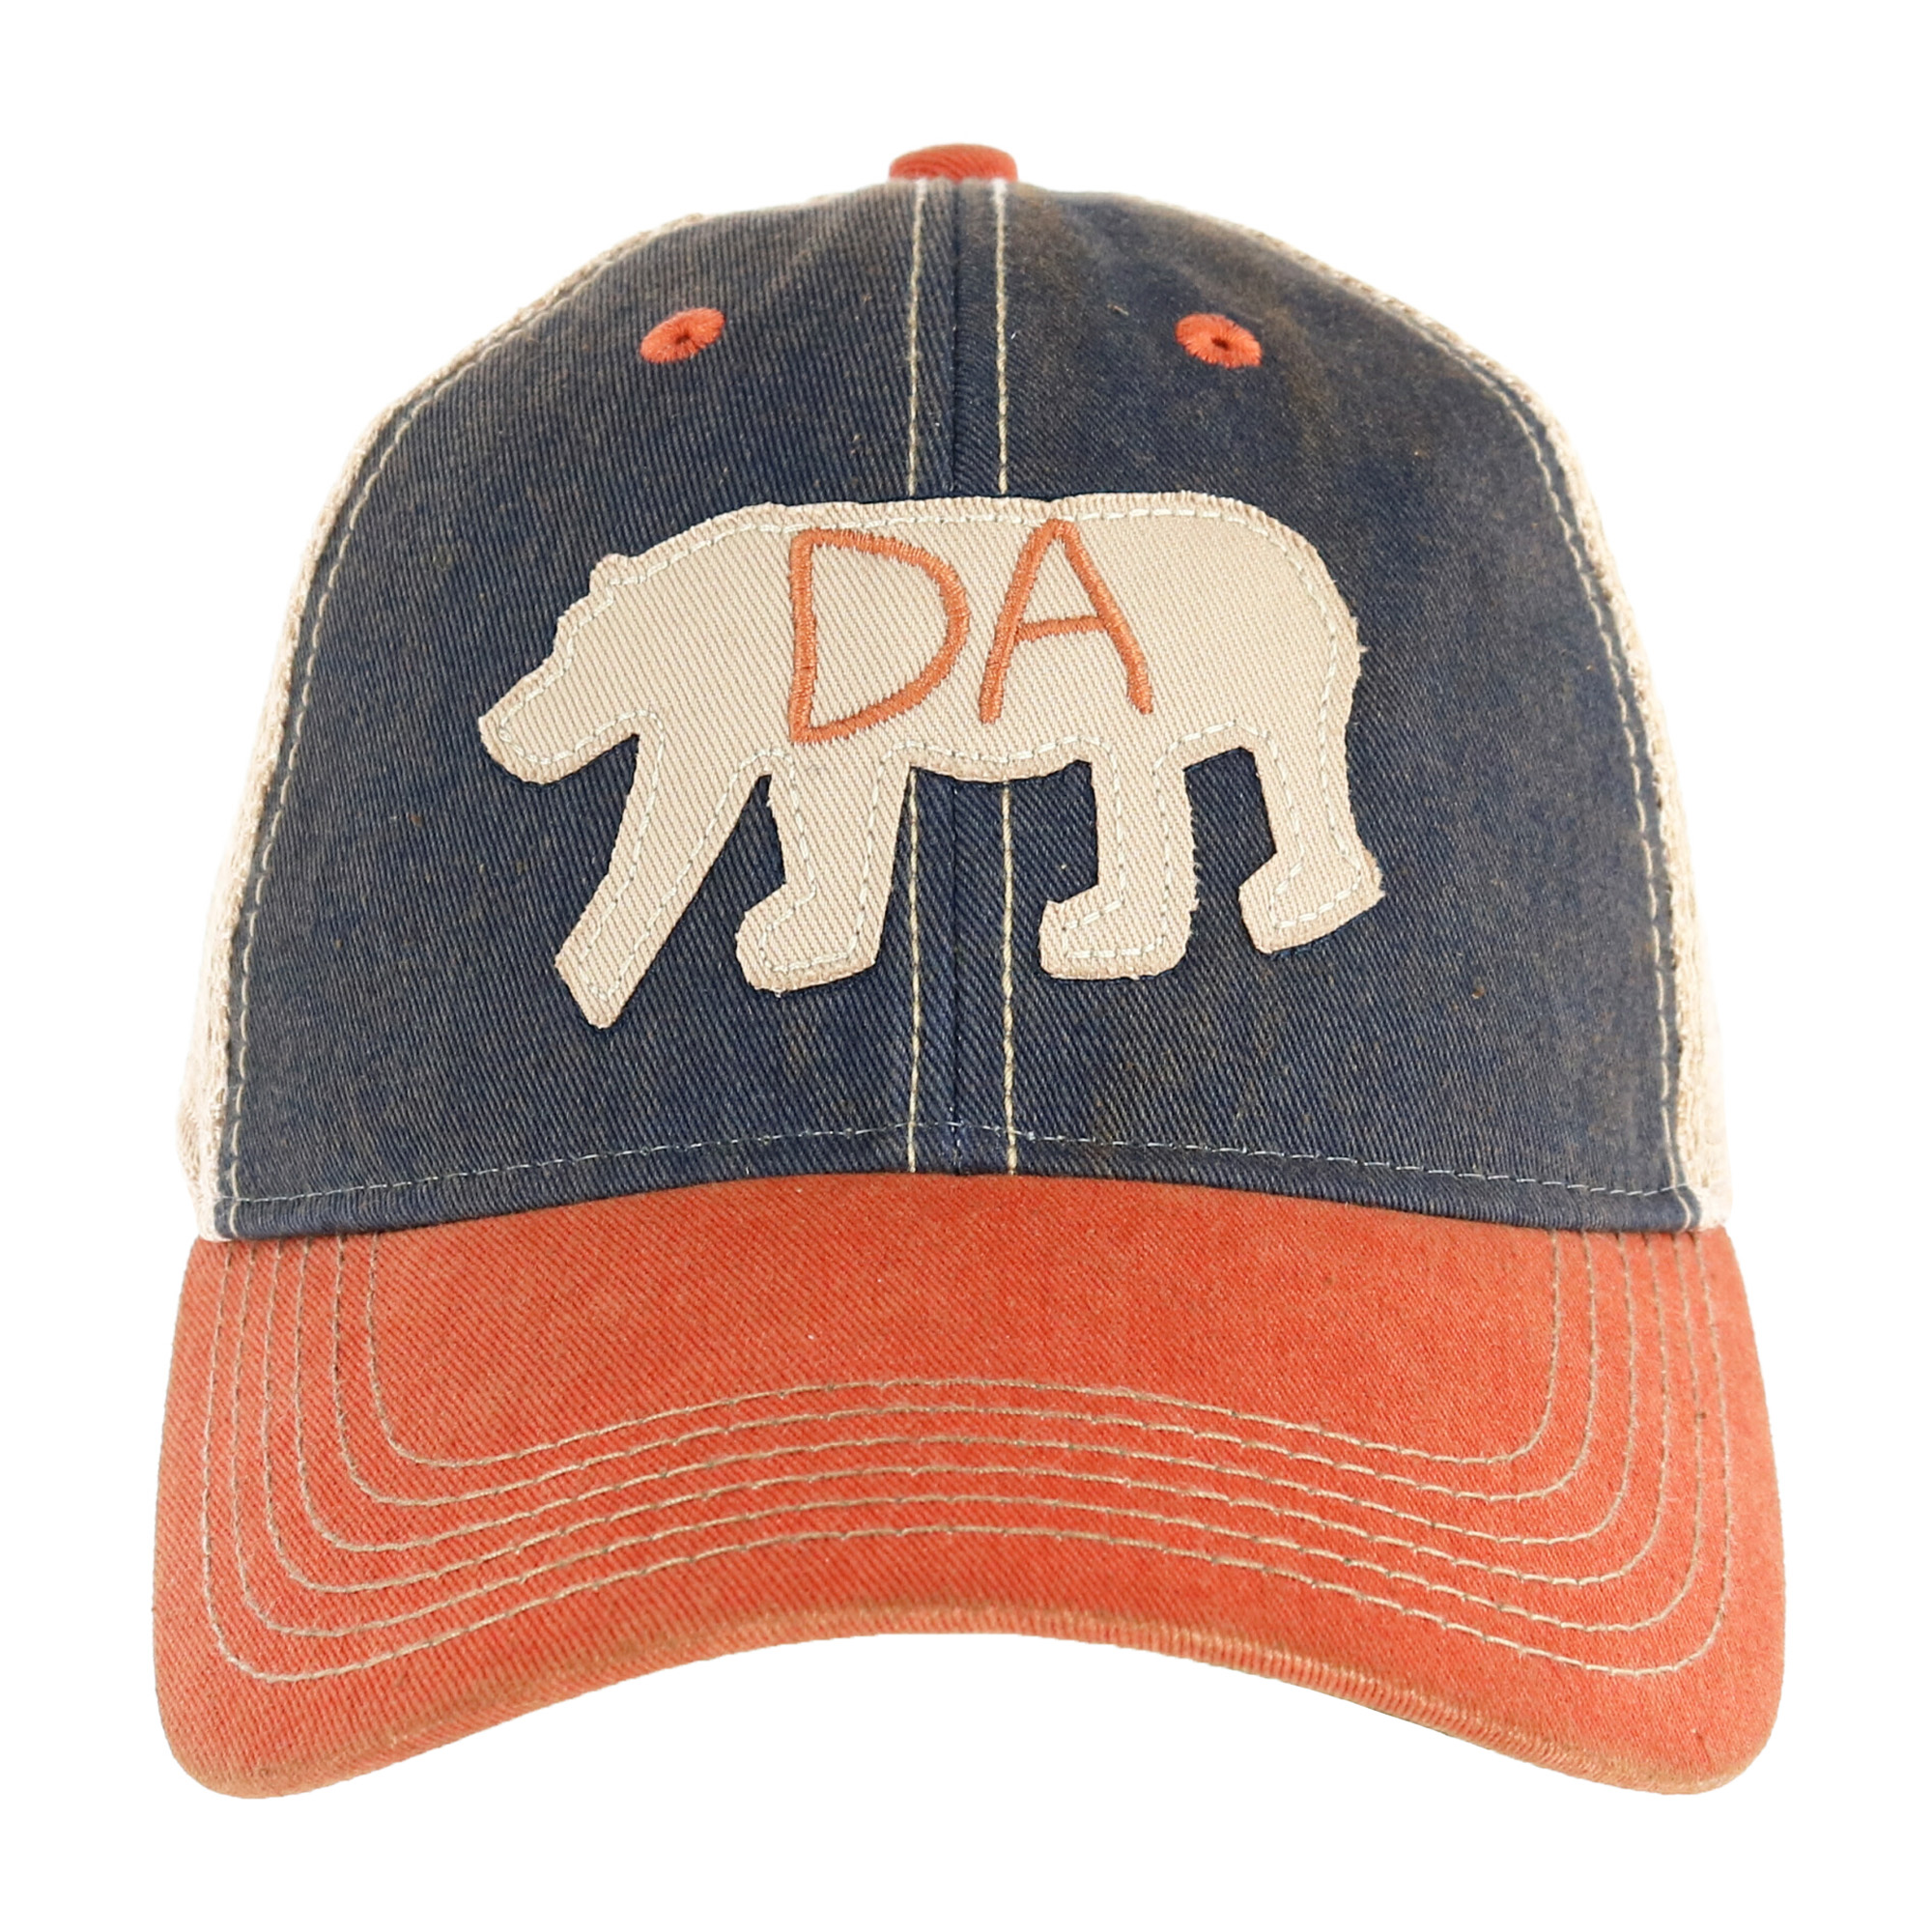 New Midwest and Beyond Da Bears Adjustable Trucker Baseball